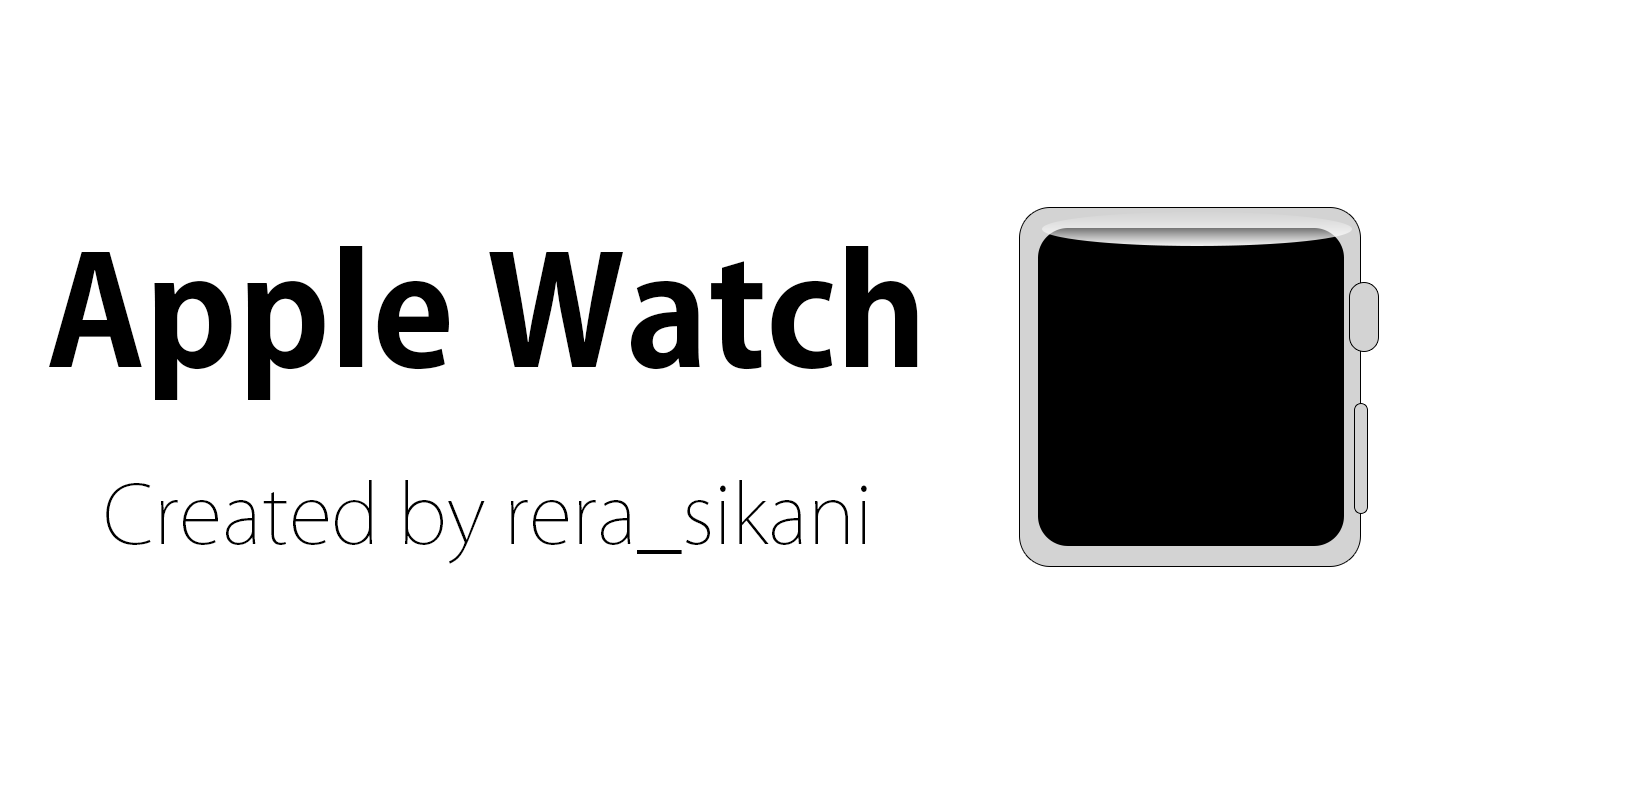 applewatch_mockup